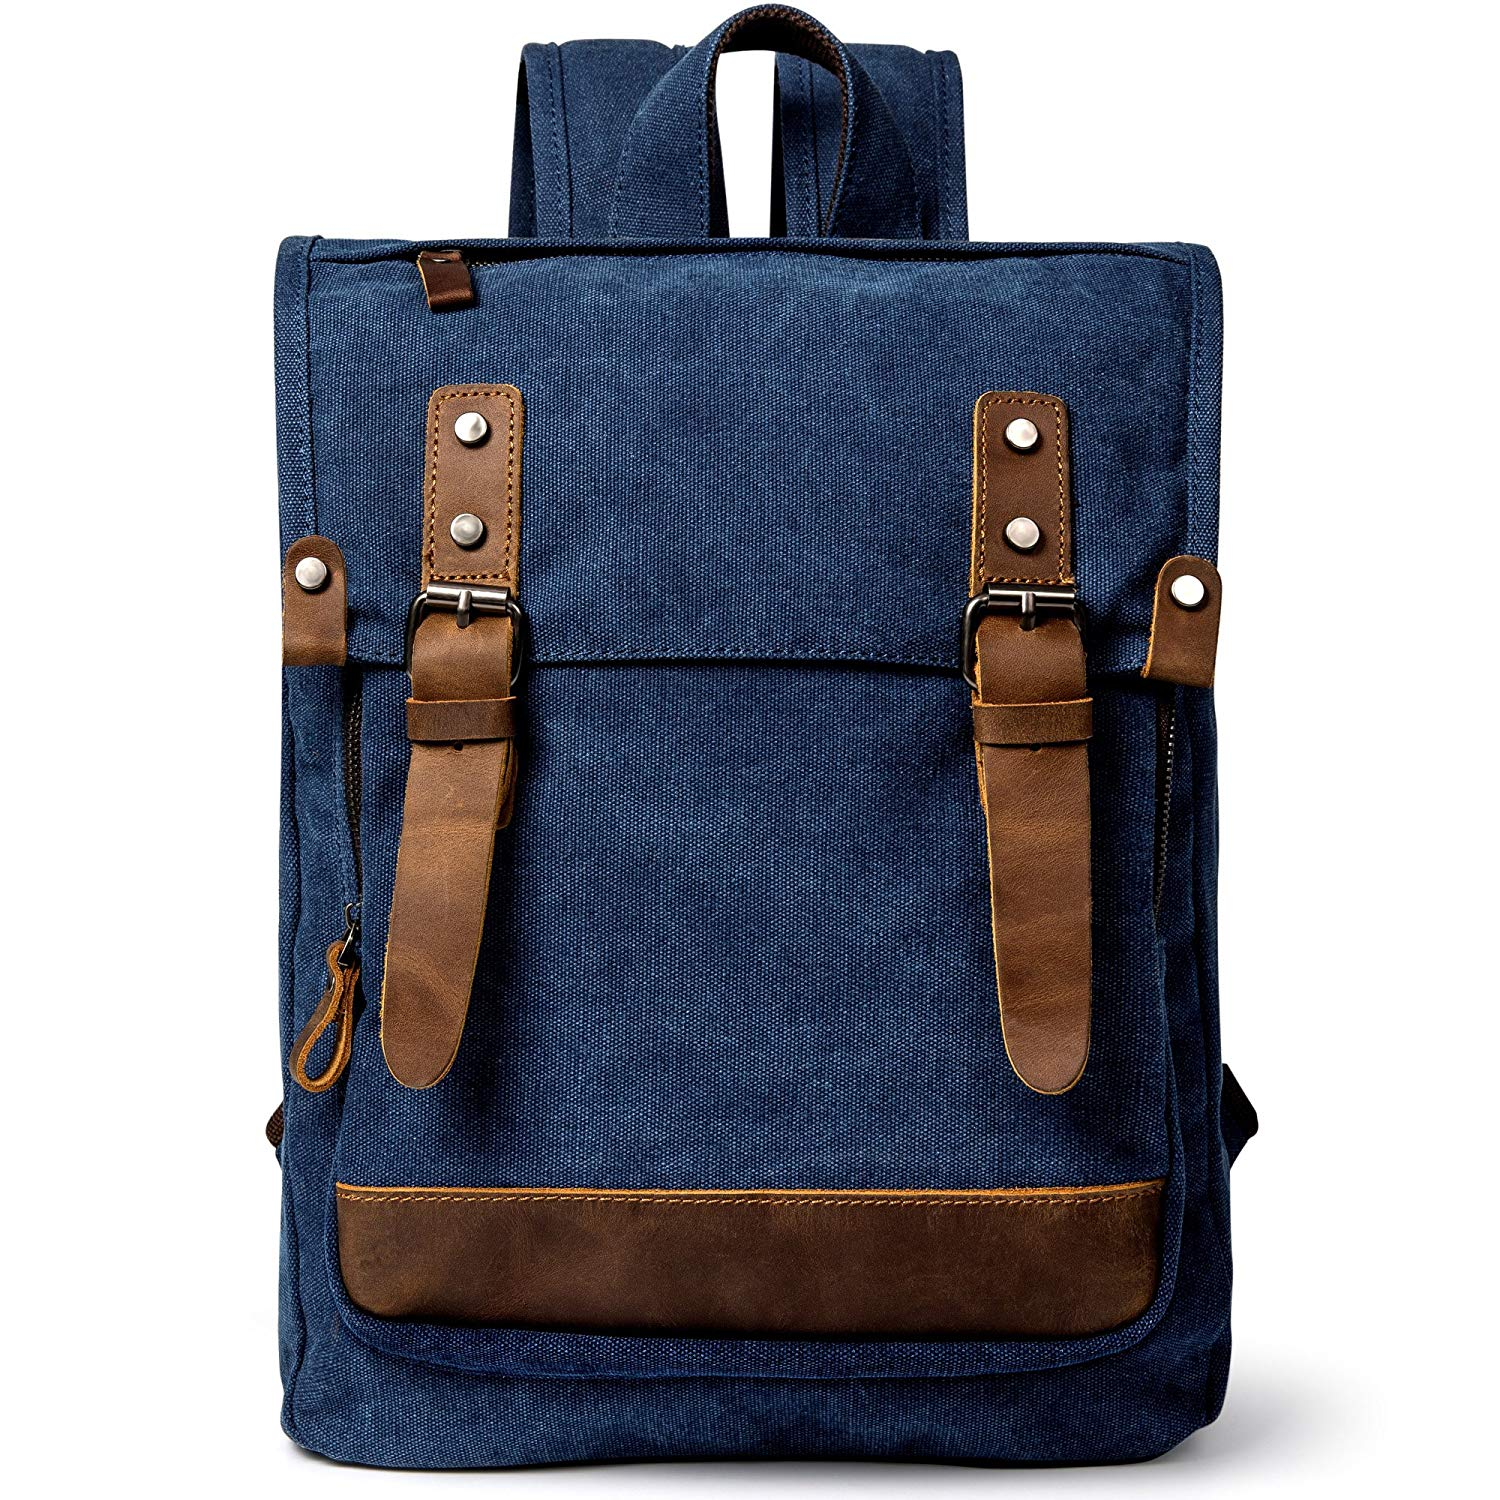 Canvas Backpack, F-color Casual Canvas Bag Laptop Backpack with Genuine Leather Trim, Unisex Vintage Colleage Bag Fits 14 inch Laptop, Hiking Travel Rucksack Knapsack for Men and Women, Blue